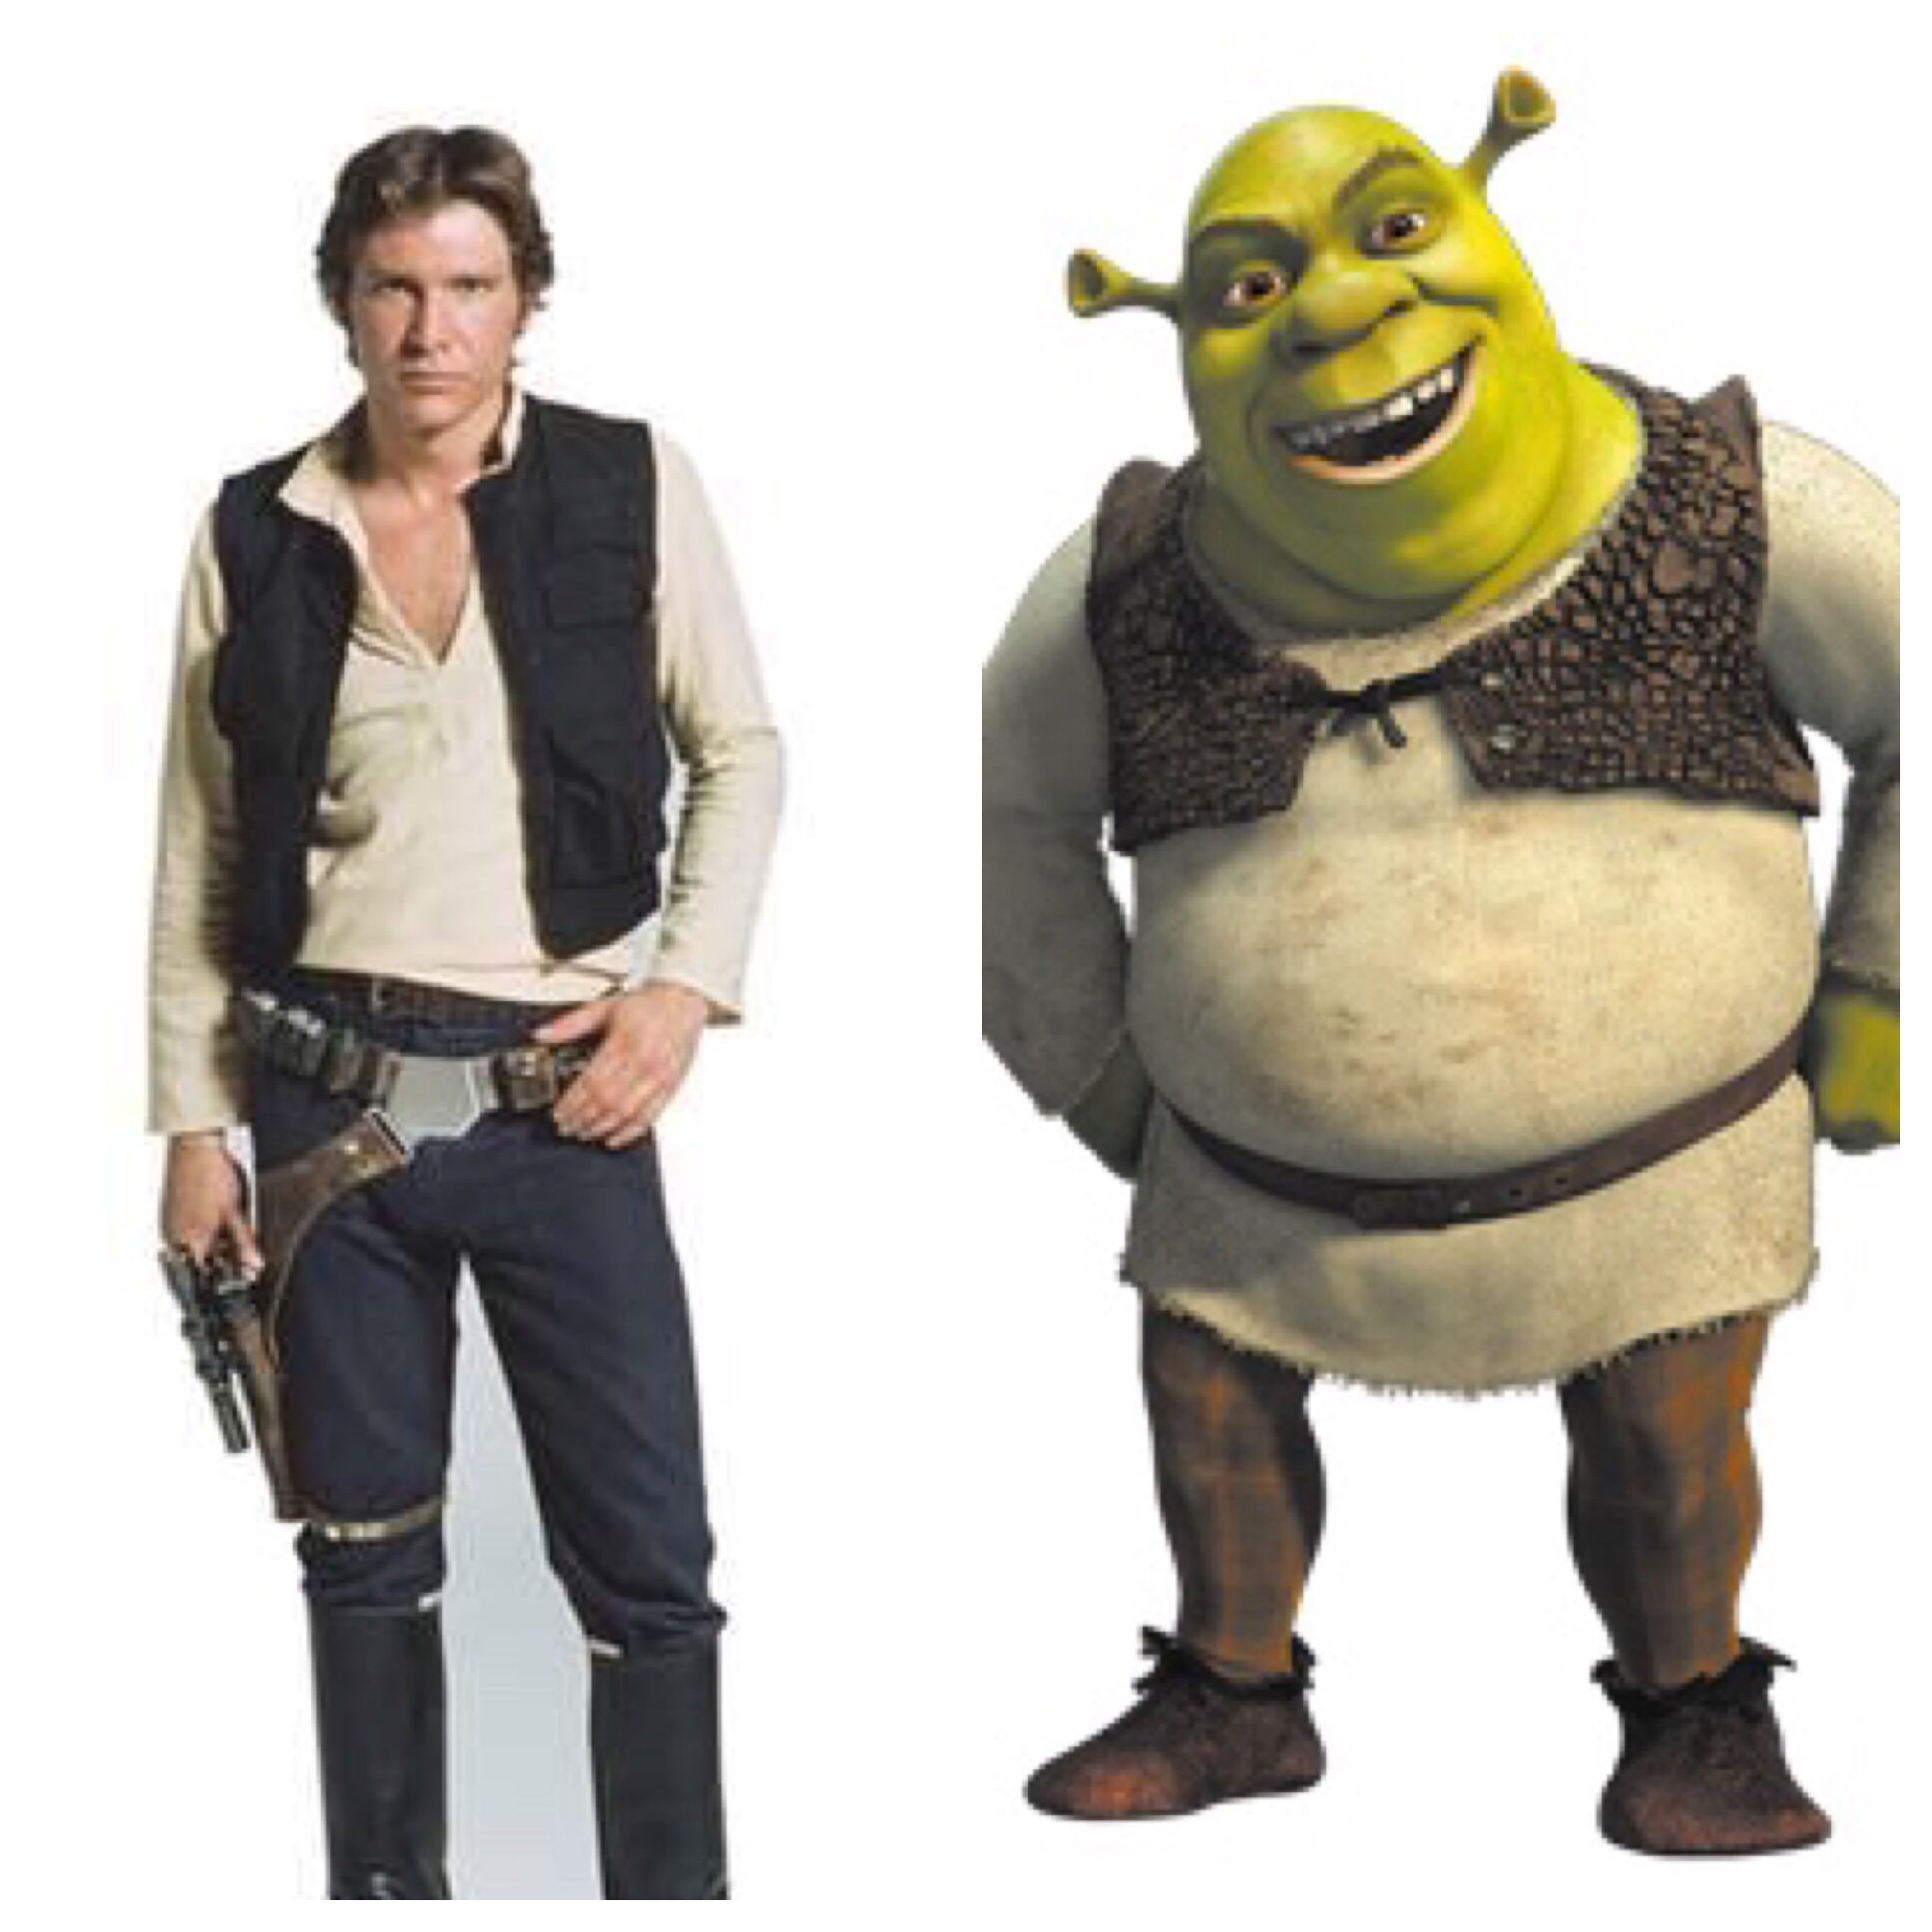 Han Solo And Shrek Han Solo And Shrek Dress The Same Know Your Meme